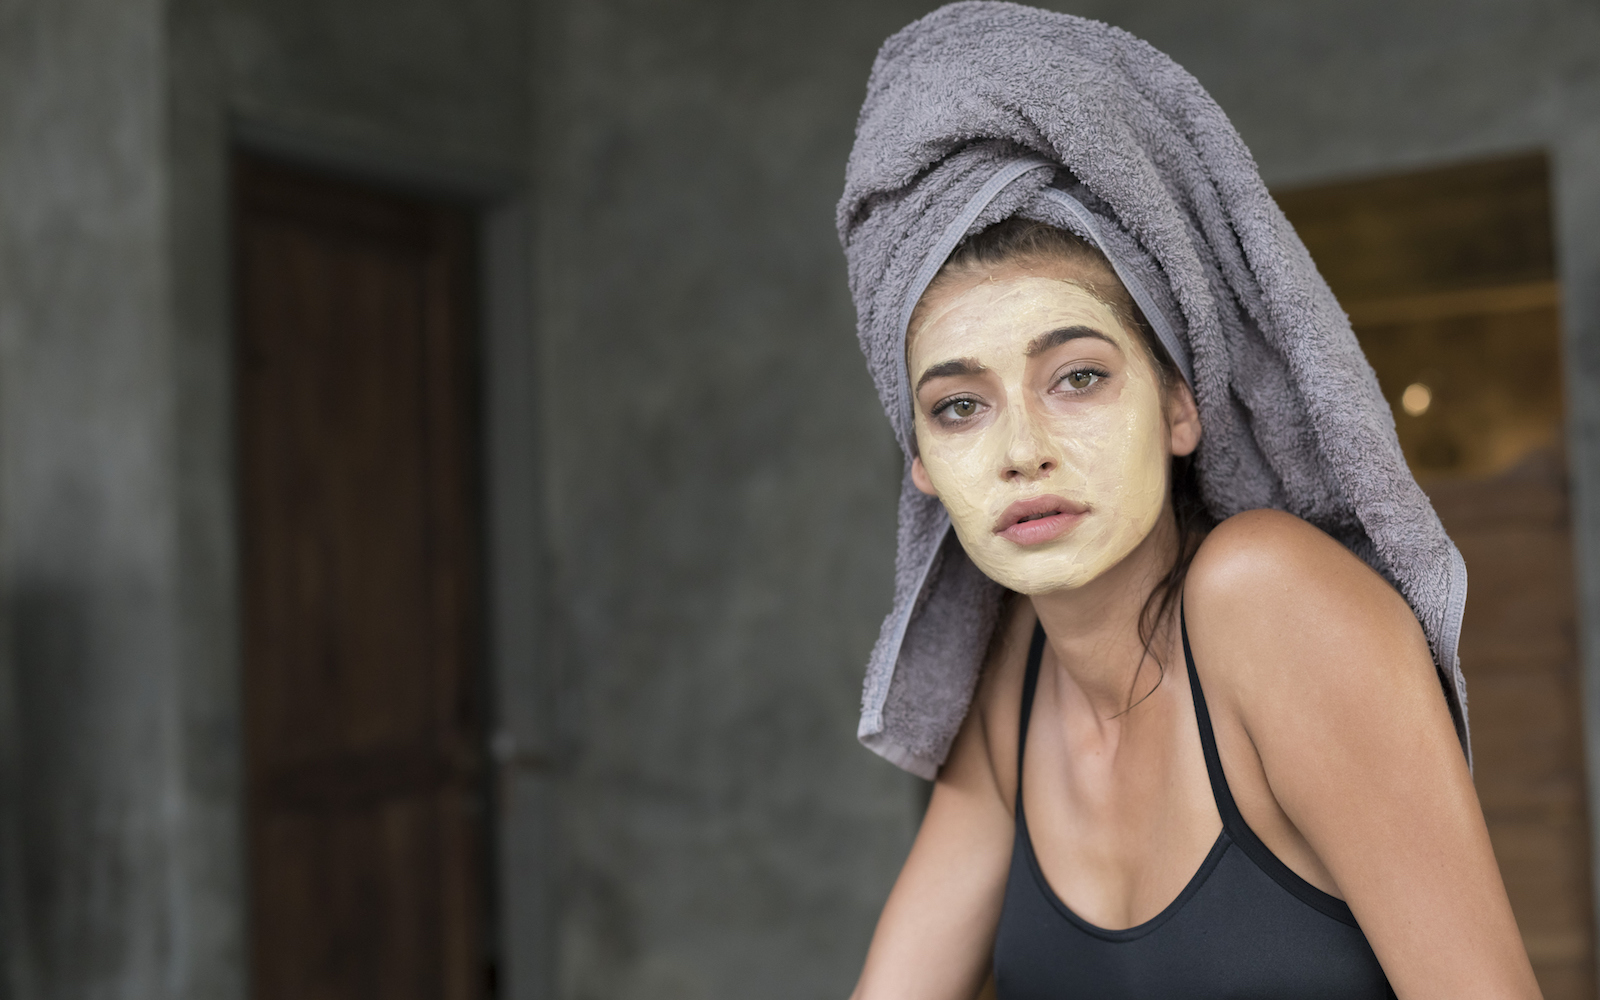 a woman doing a face mask after showering